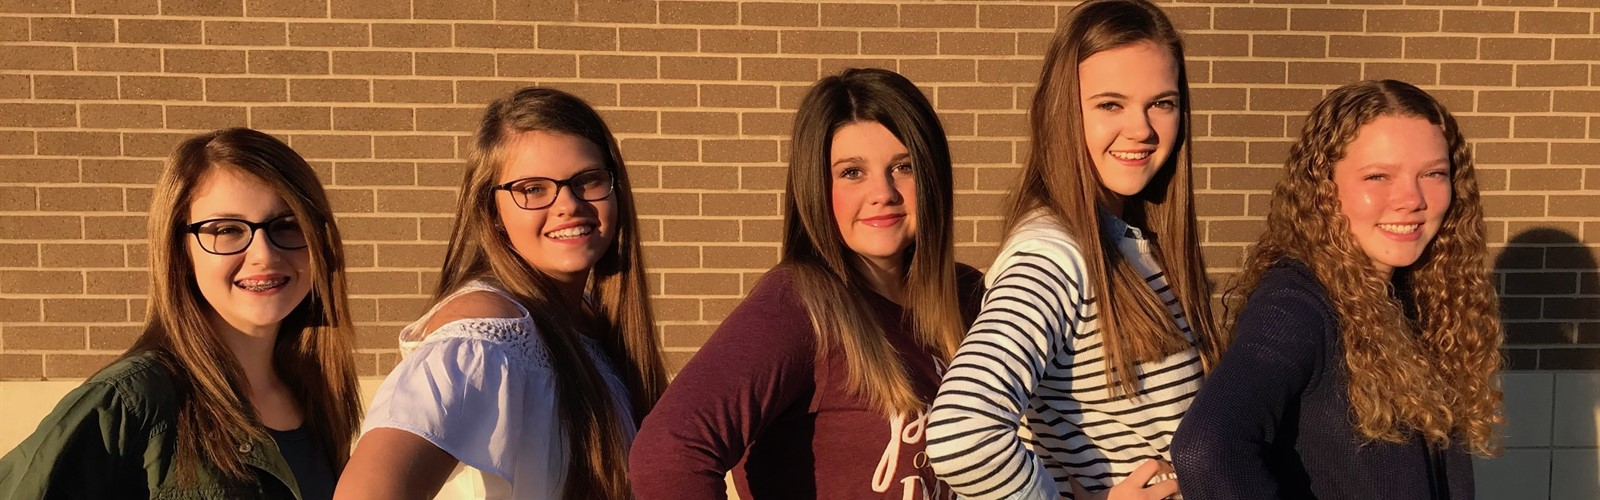 Morgan County Middle School National Junior Honor Society Officers